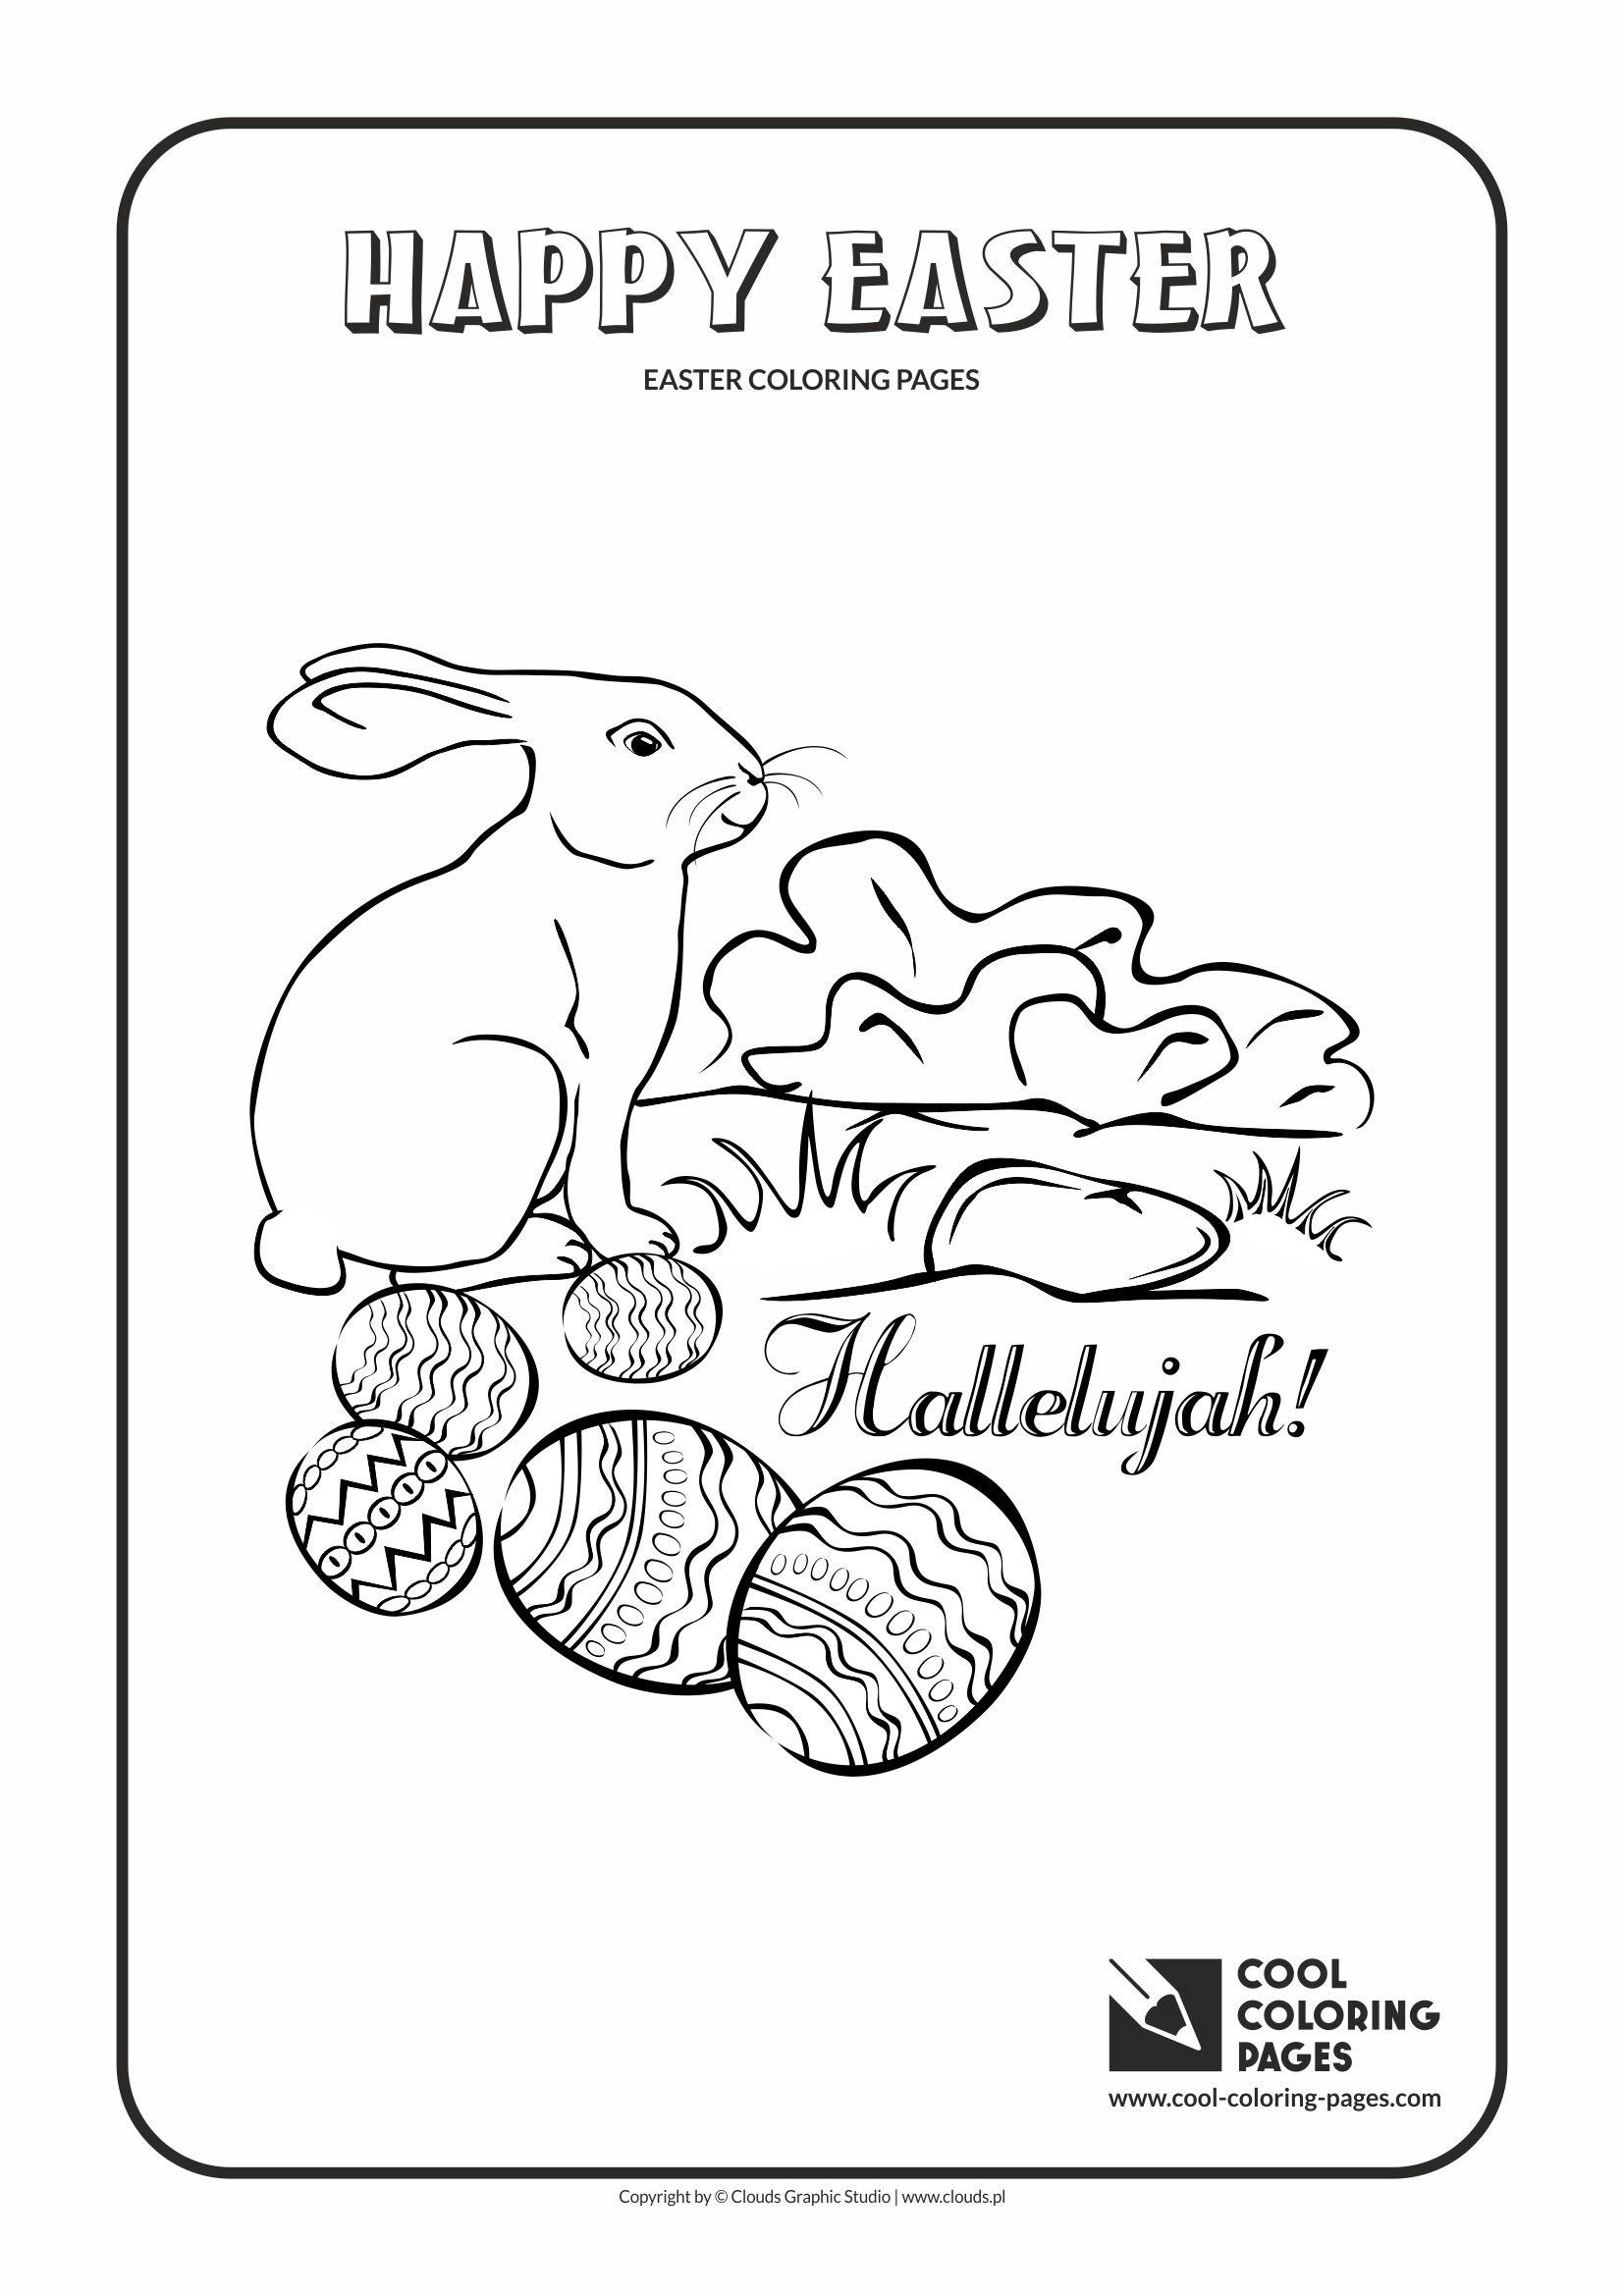 Cool Coloring Pages - Holidays / Easter bunny no 2 / Coloring page with Easter bunny no 2